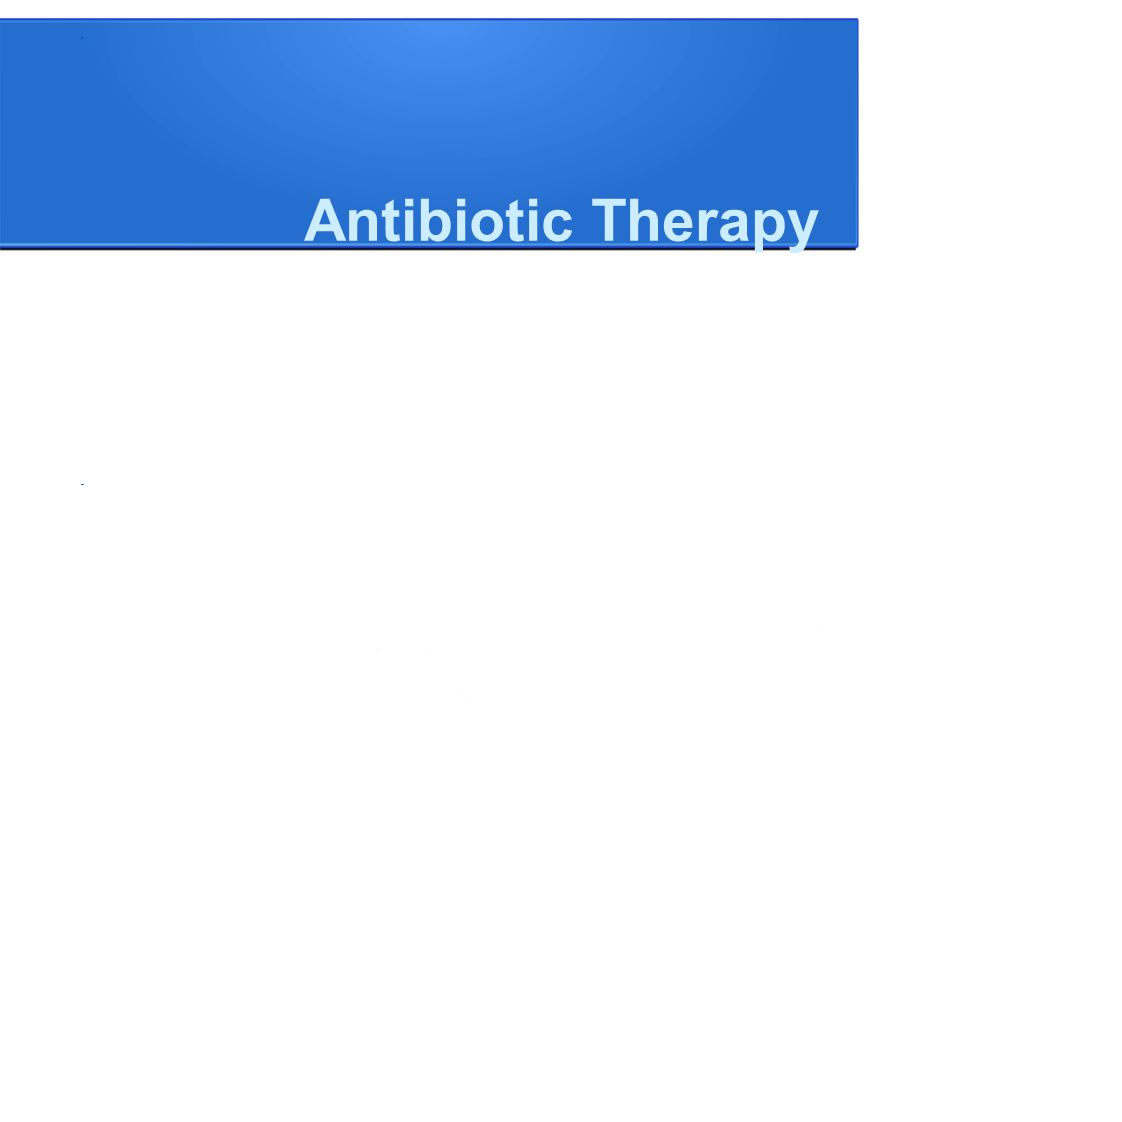 Antibiotic Therapy One or more drugs active against likely bacterial or fungal pathogens.